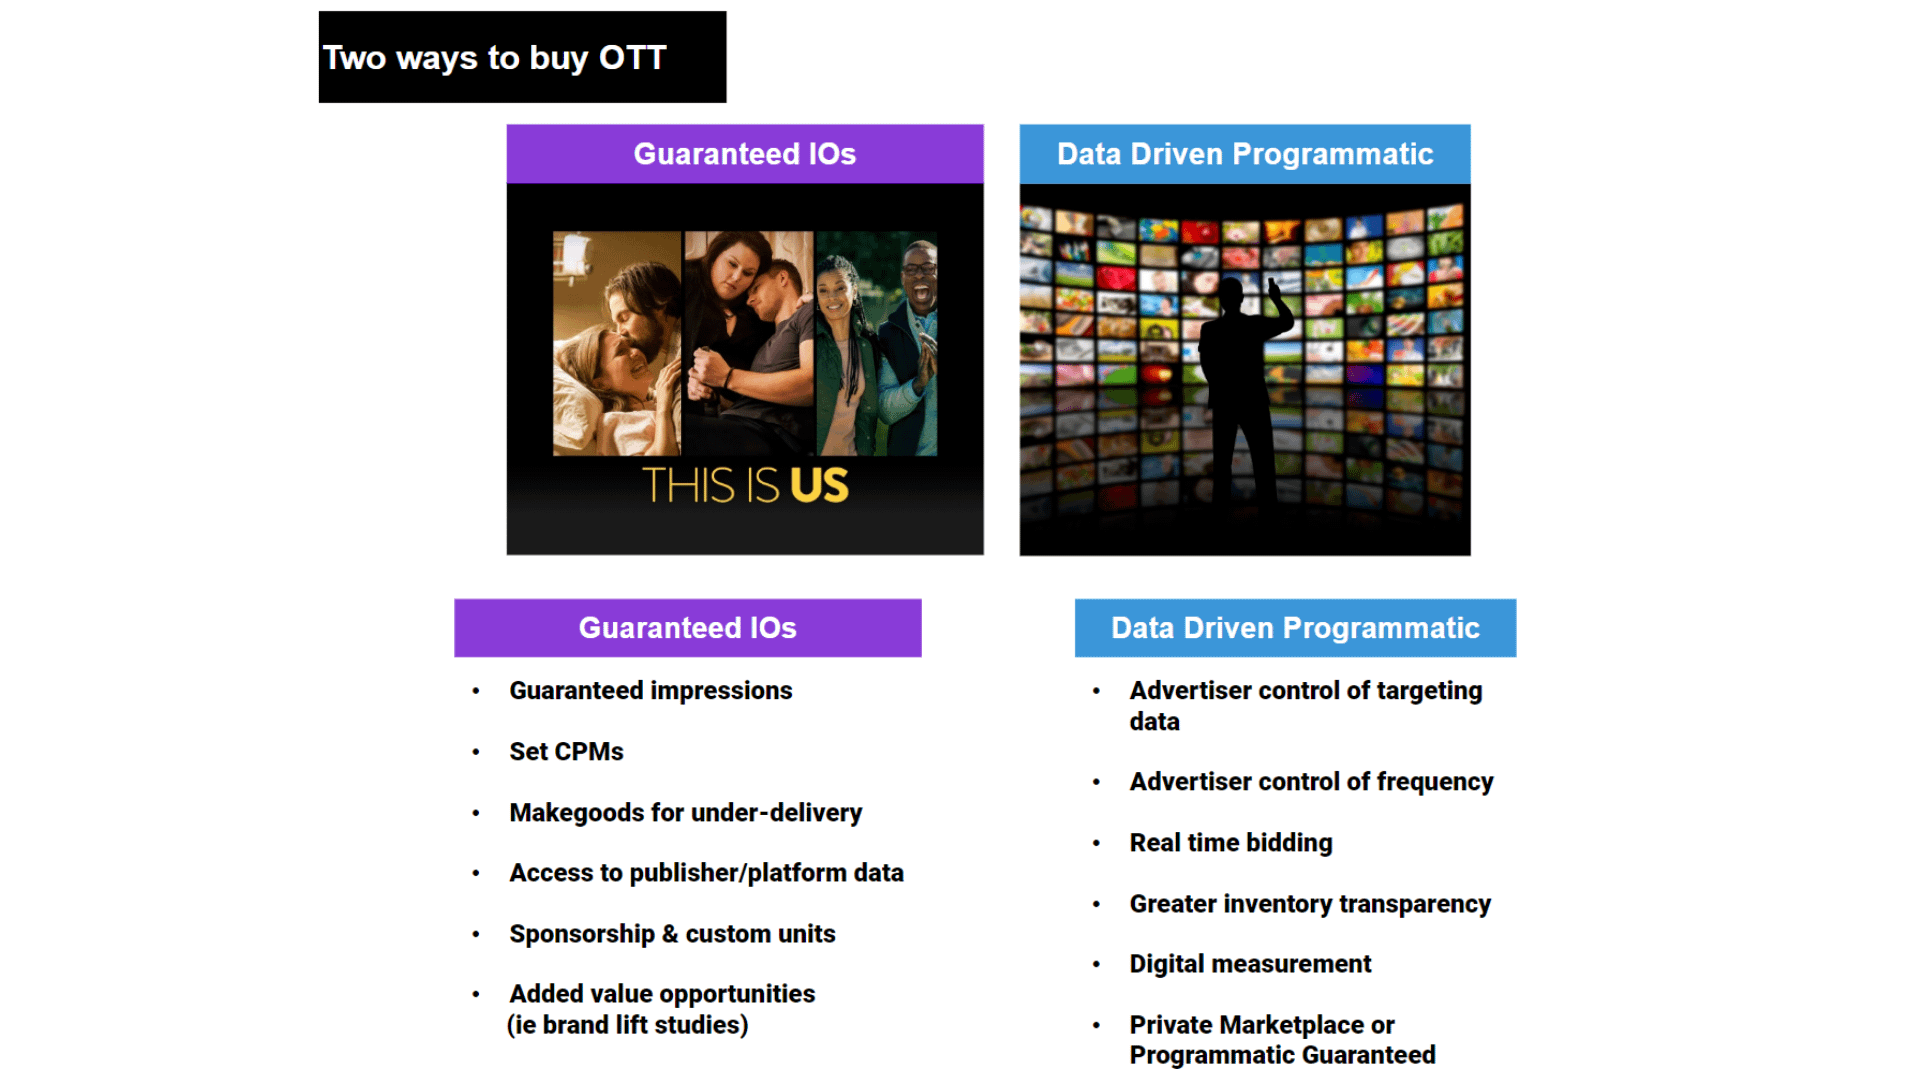 the two ways to buy ott advertising